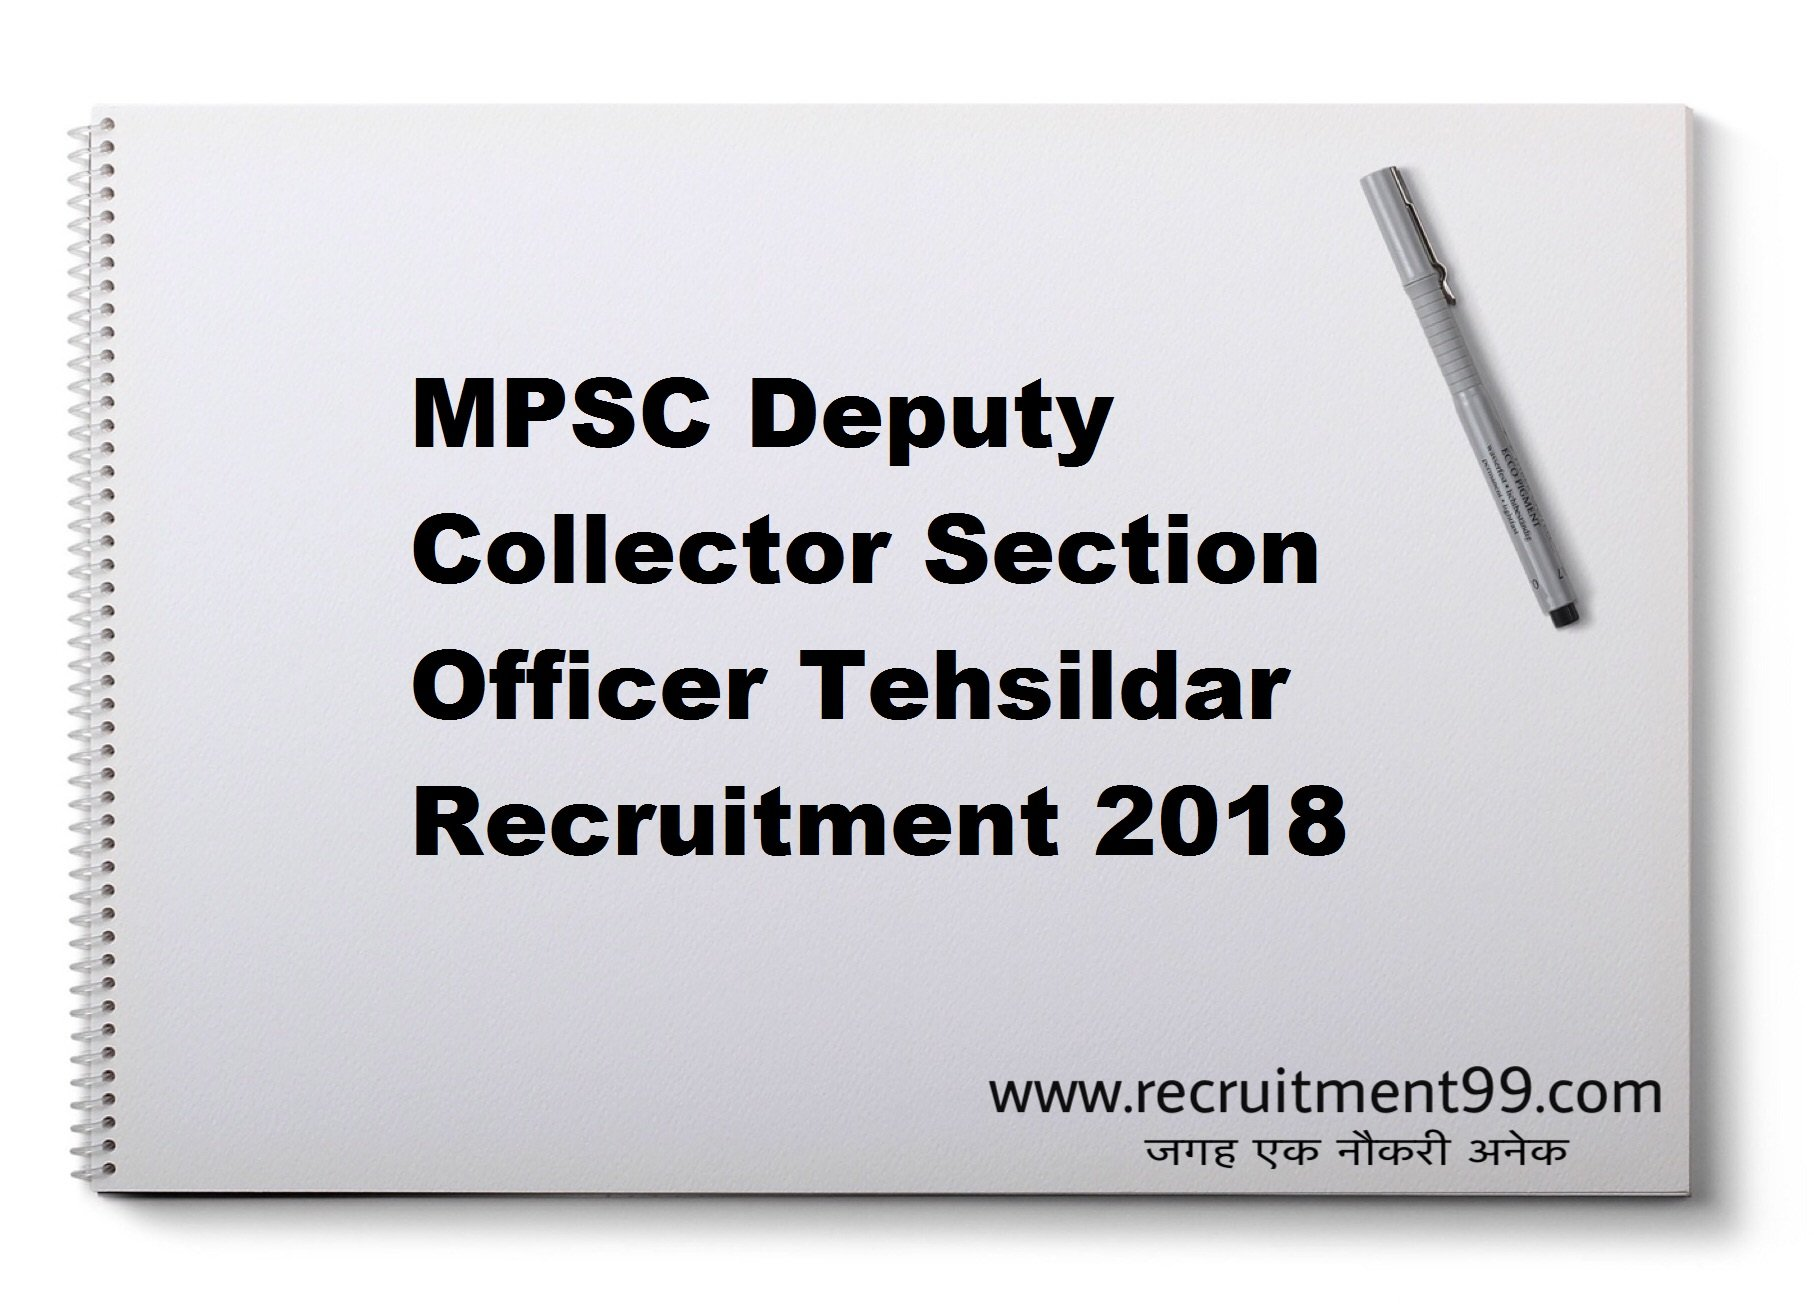 MPSC Deputy Collector Section Officer Tehsildar Bharti Admit Card Result 2018